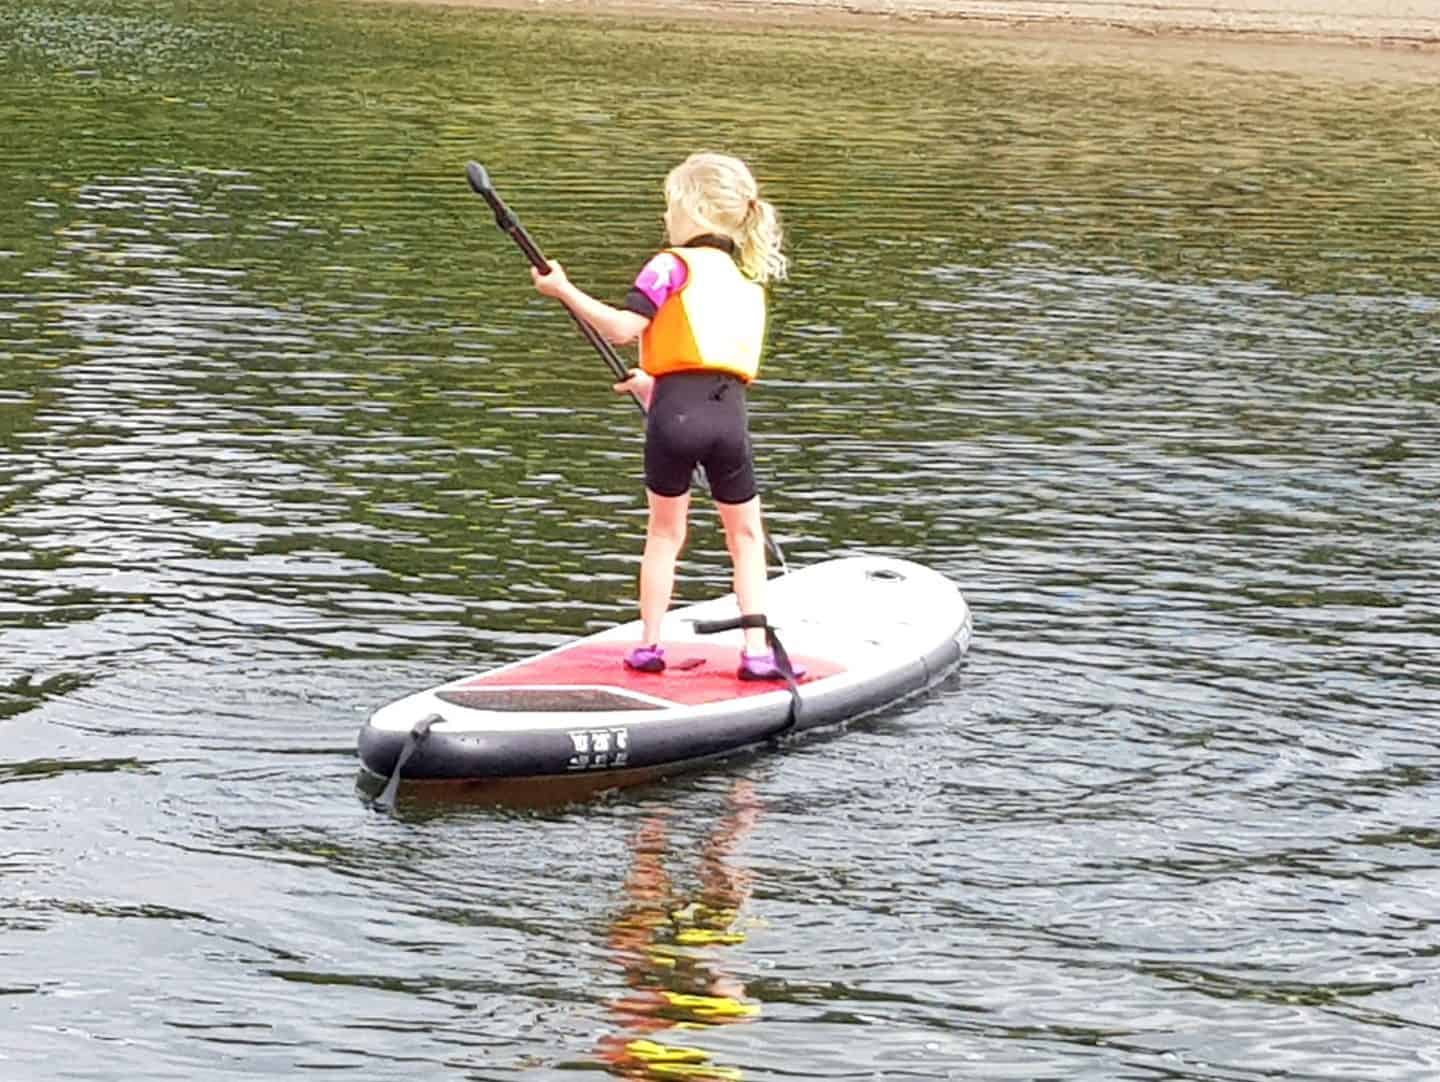 Hoburne Blue Anchor little girl on SUP at Wimbleball Lake